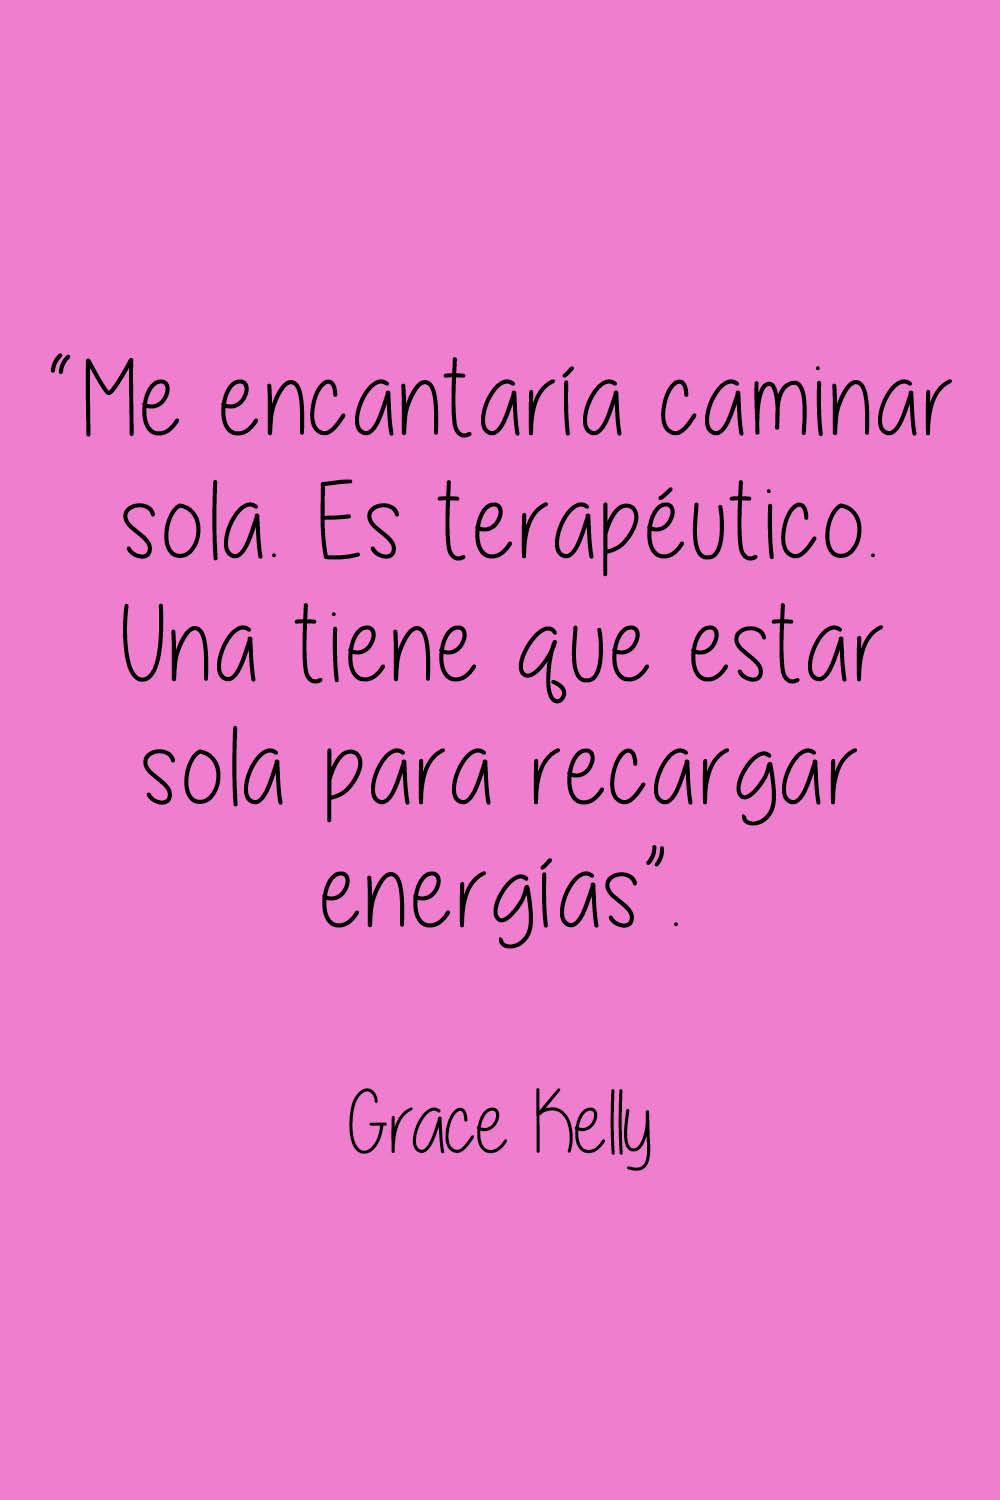 Grace Kelly frases celebres.